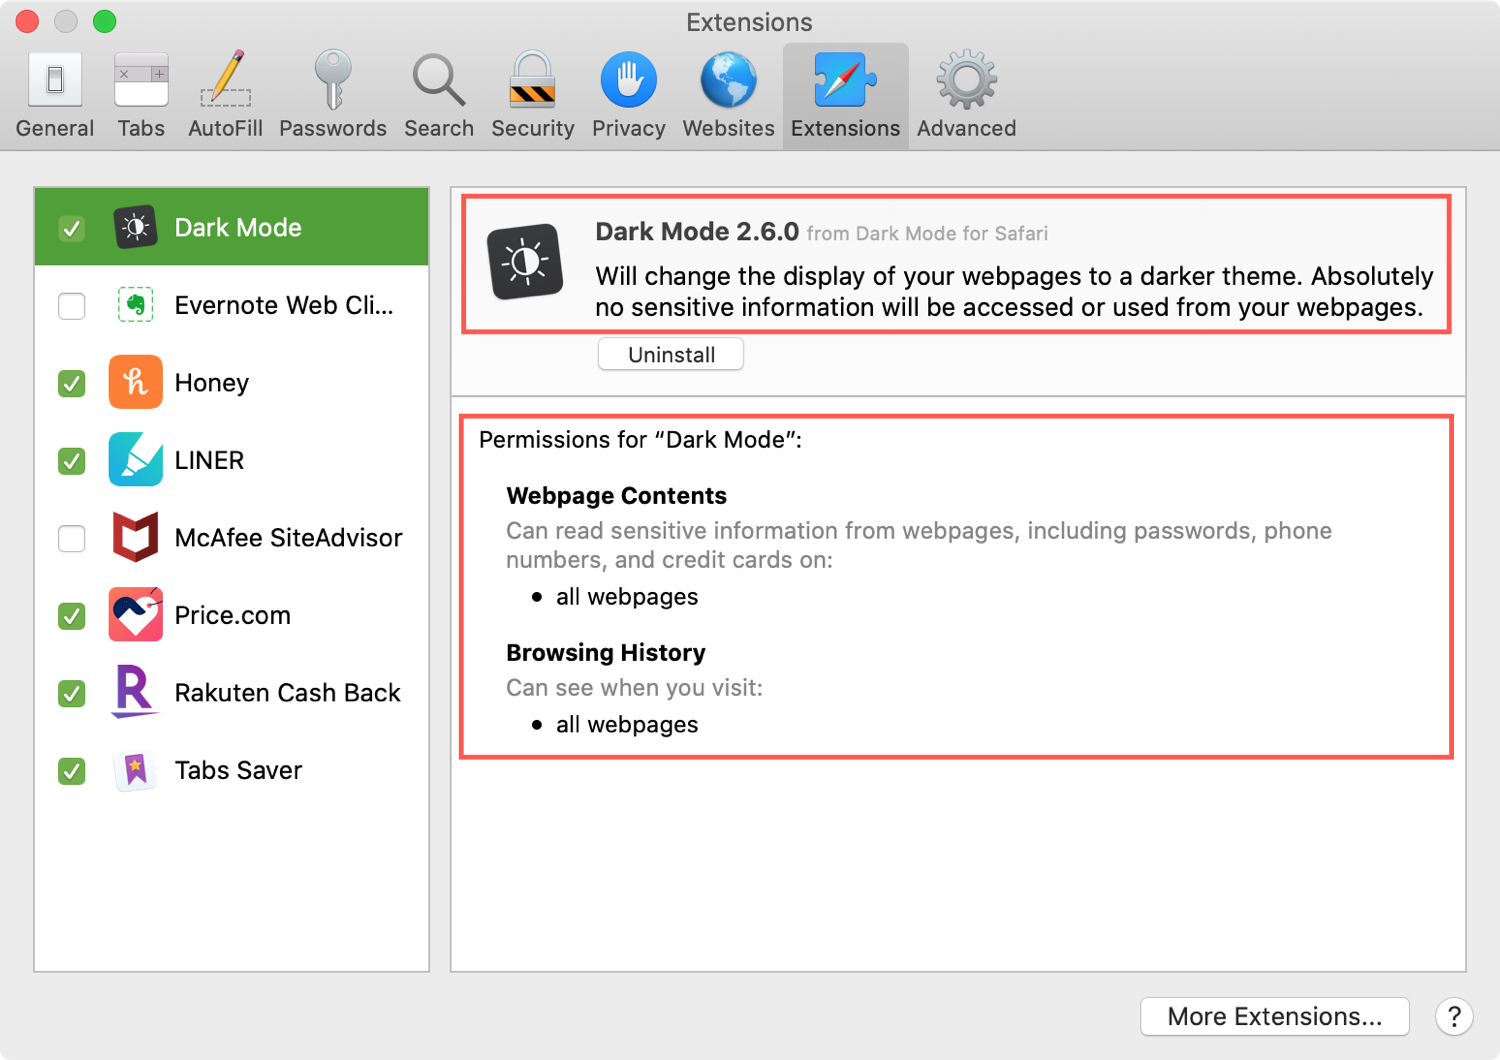 Safari Extensions Version Permissions